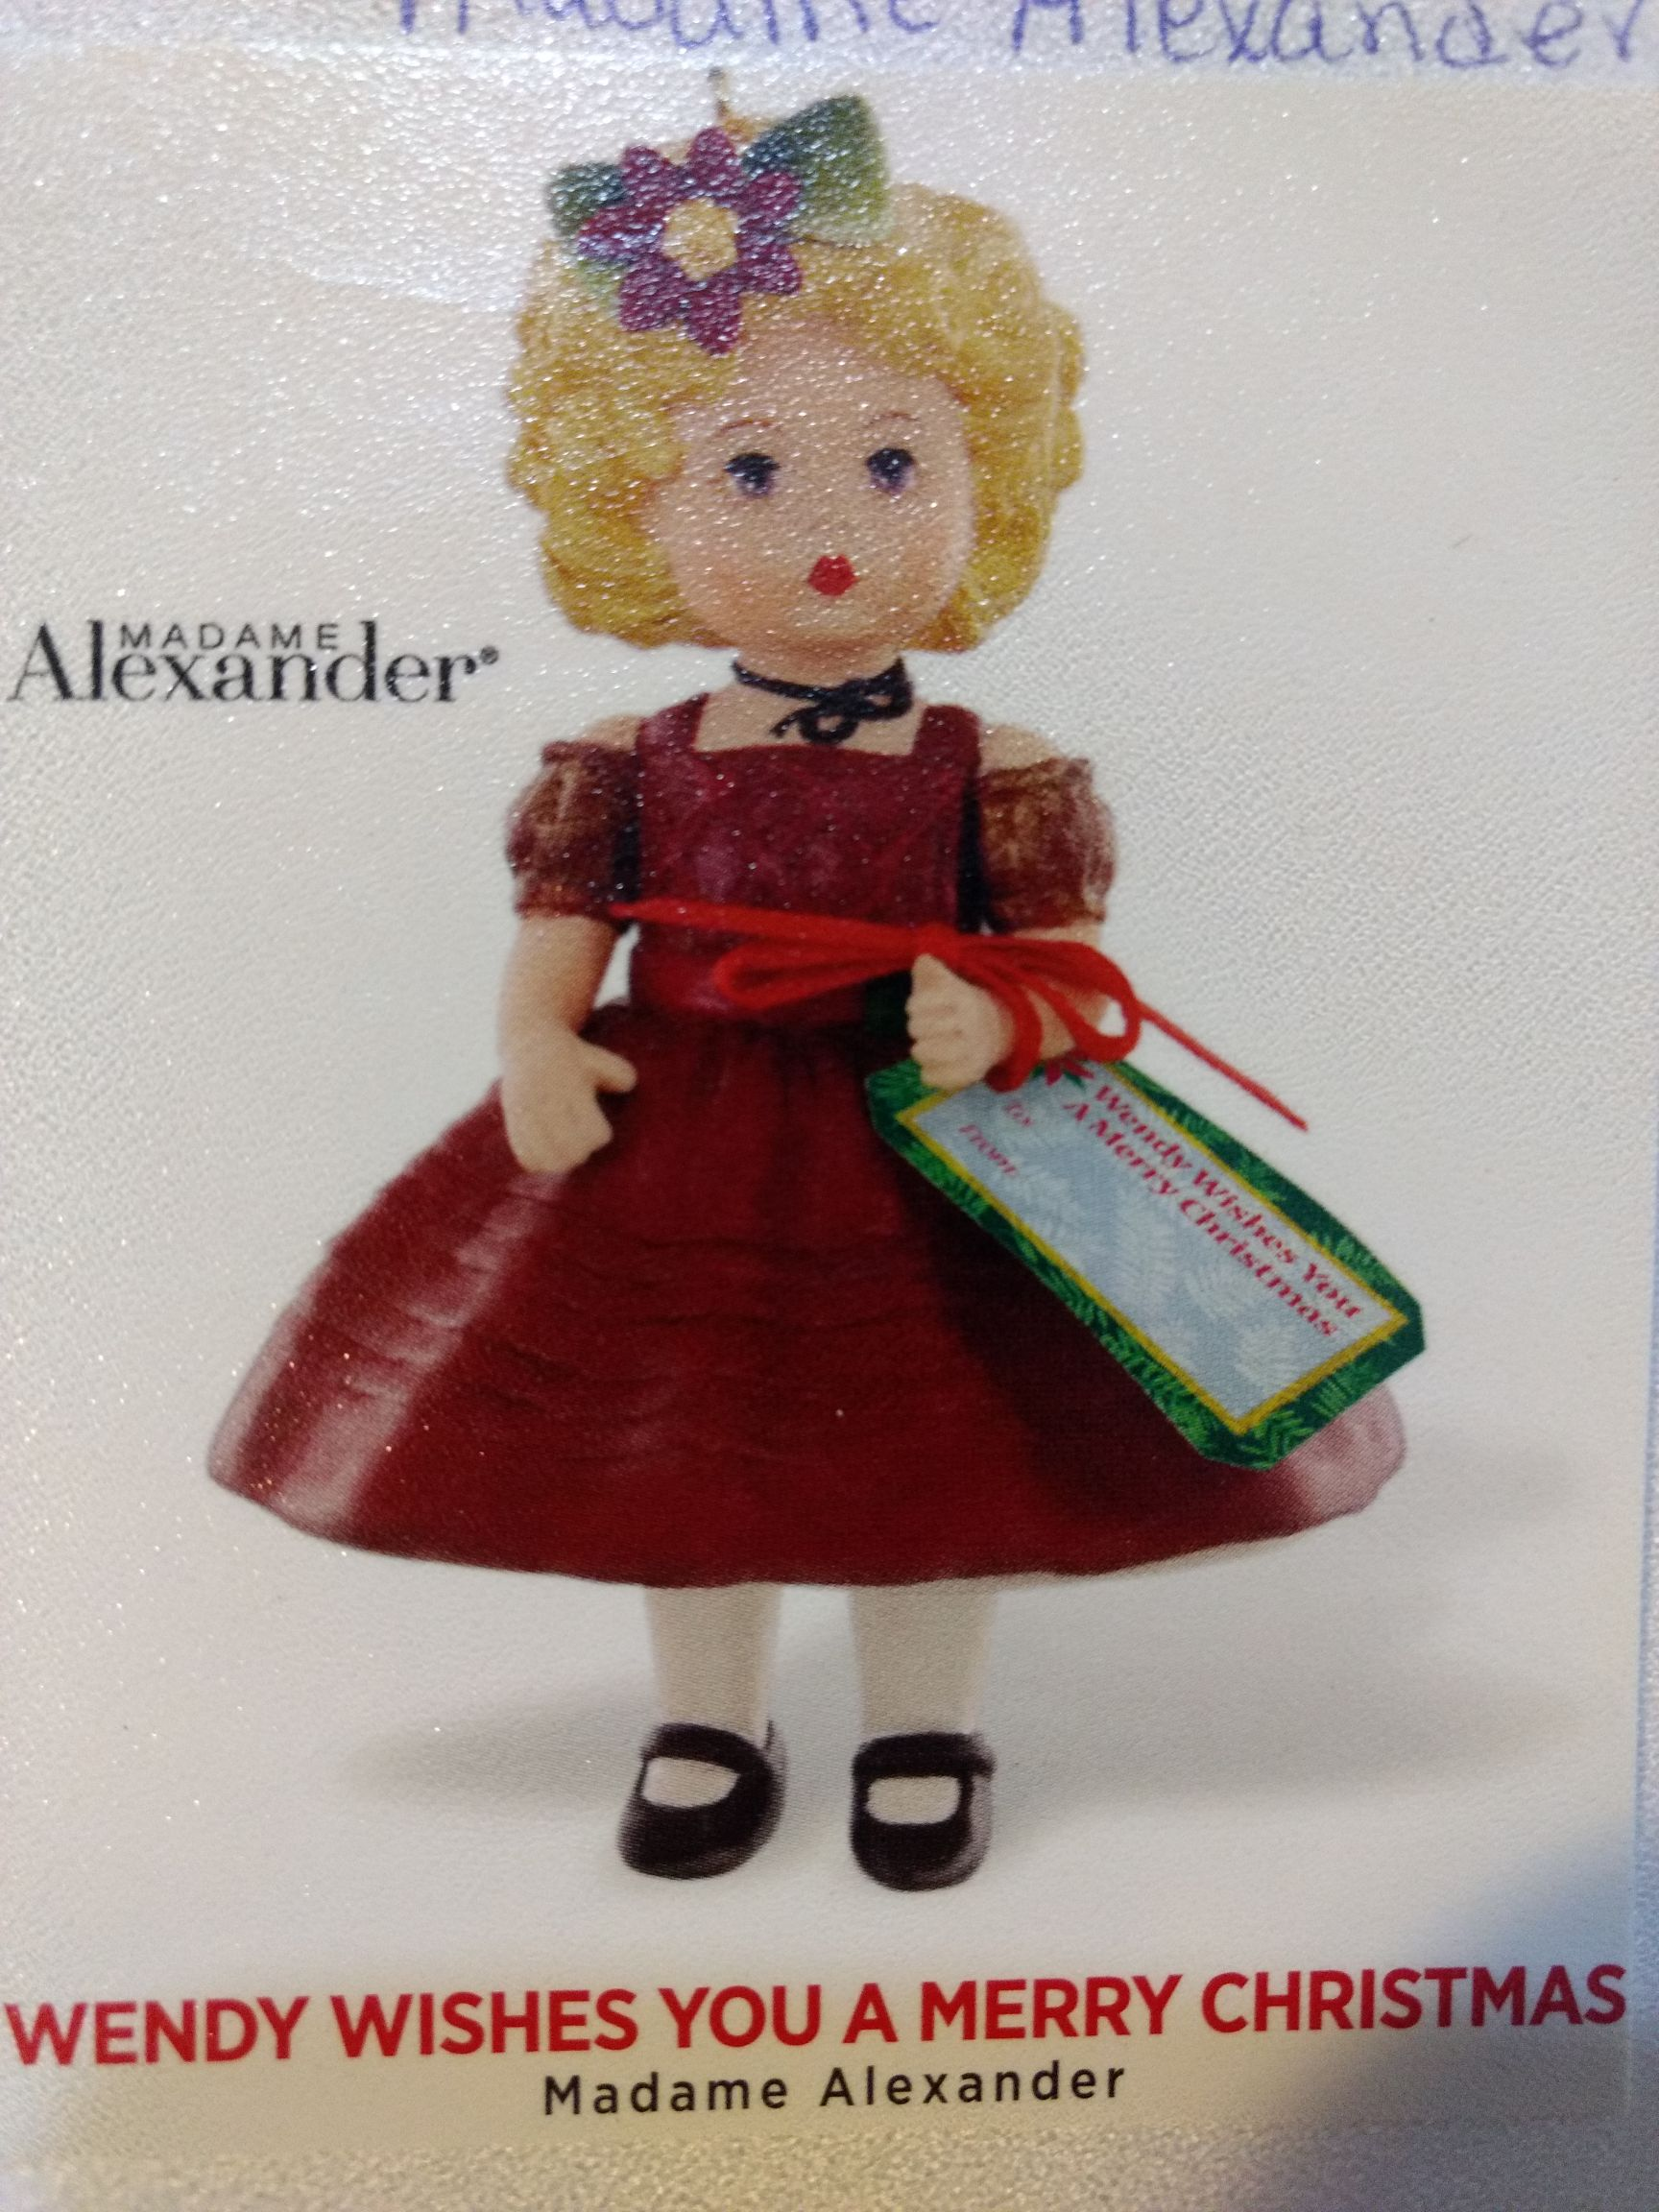 Madam Alexander - Wendy Wishes You A Merry Christmas Ornament - Hallmark front image (front cover)